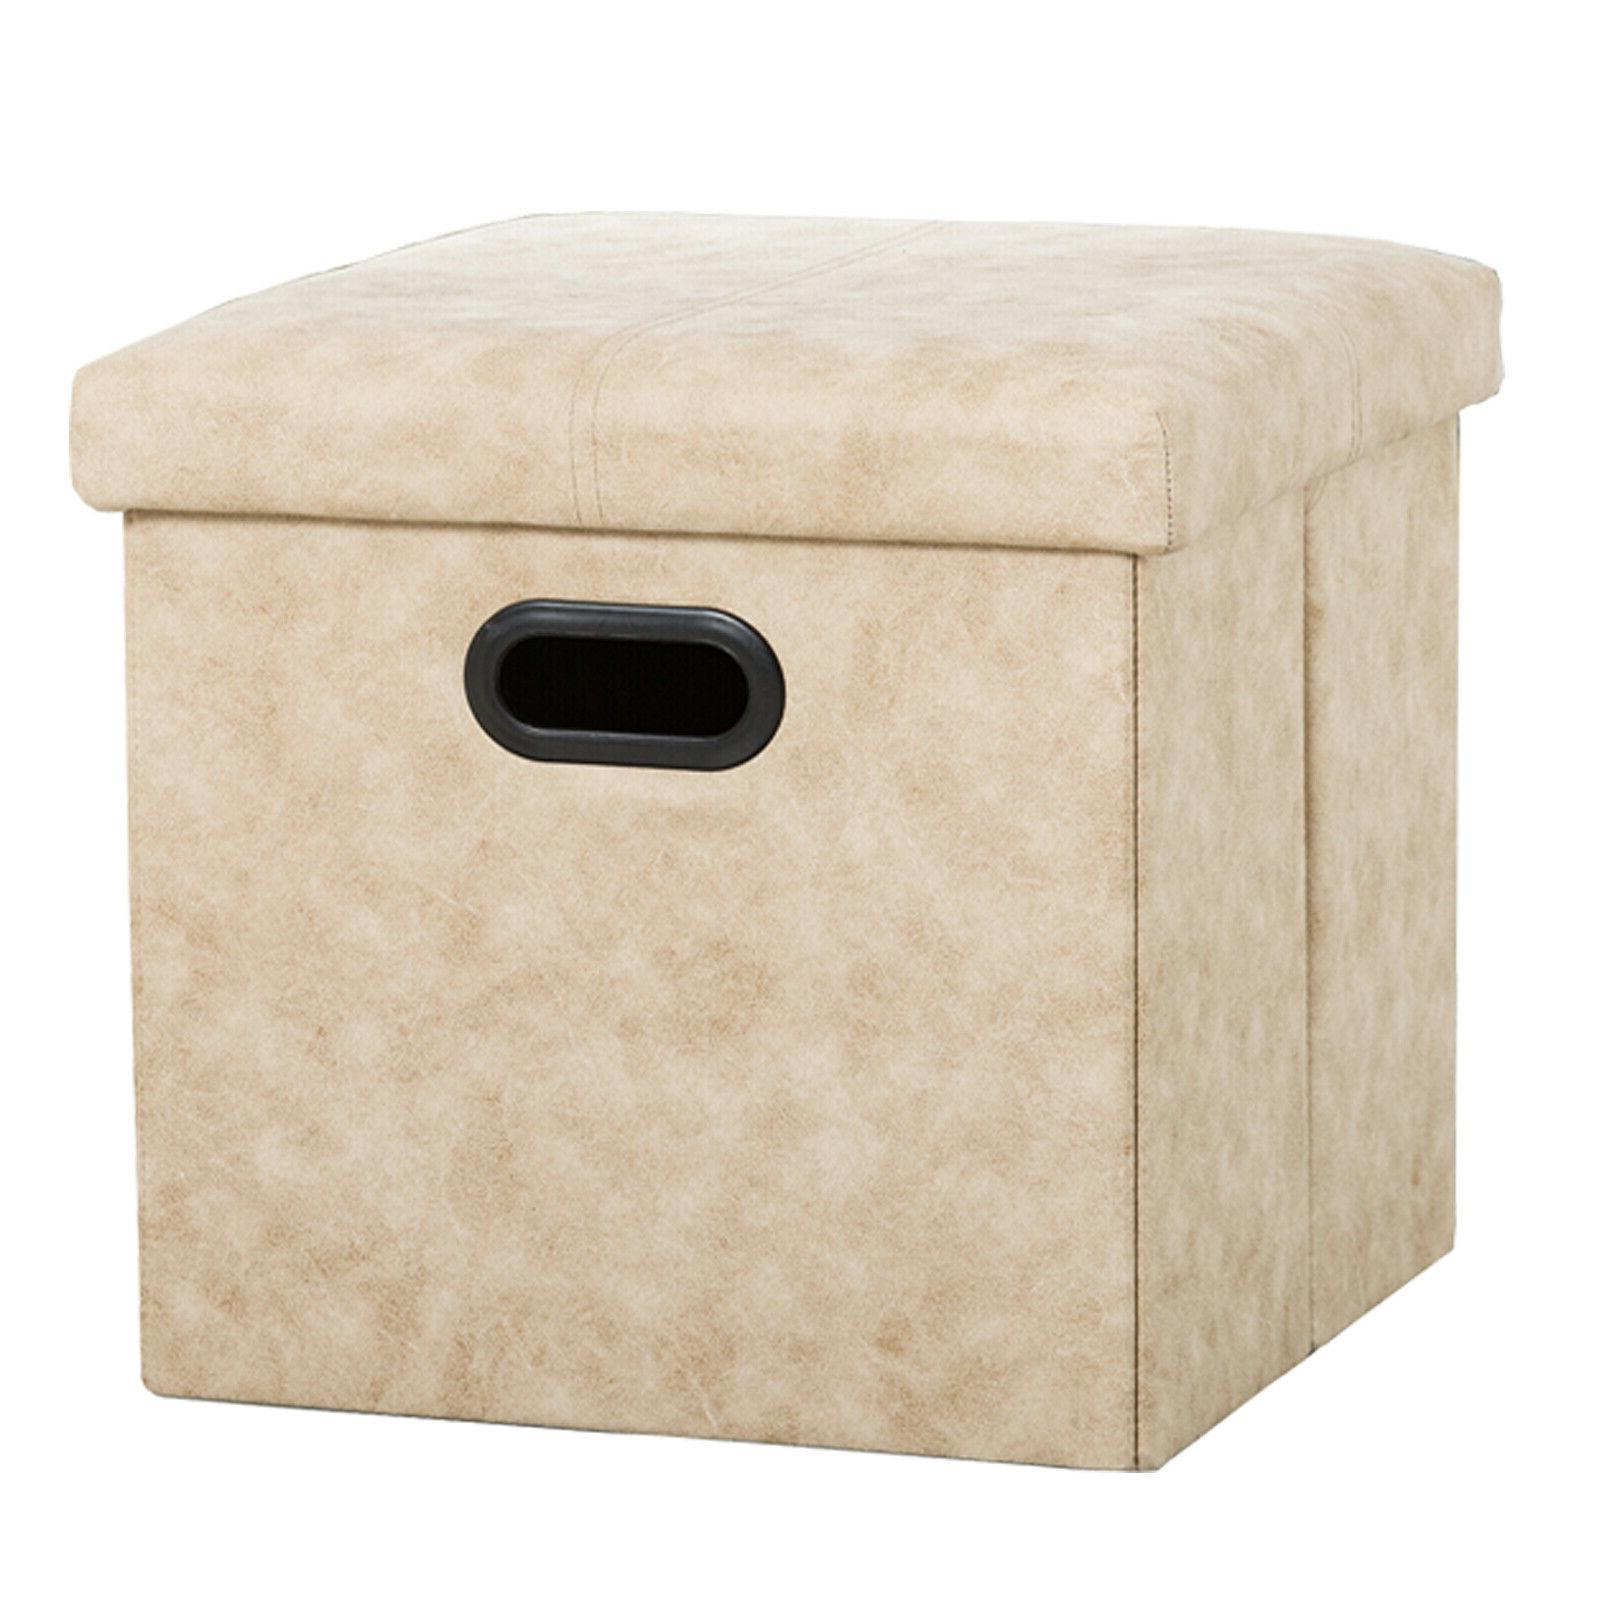 Folding Storage Bench Box Seat Foot Rest Stool Home